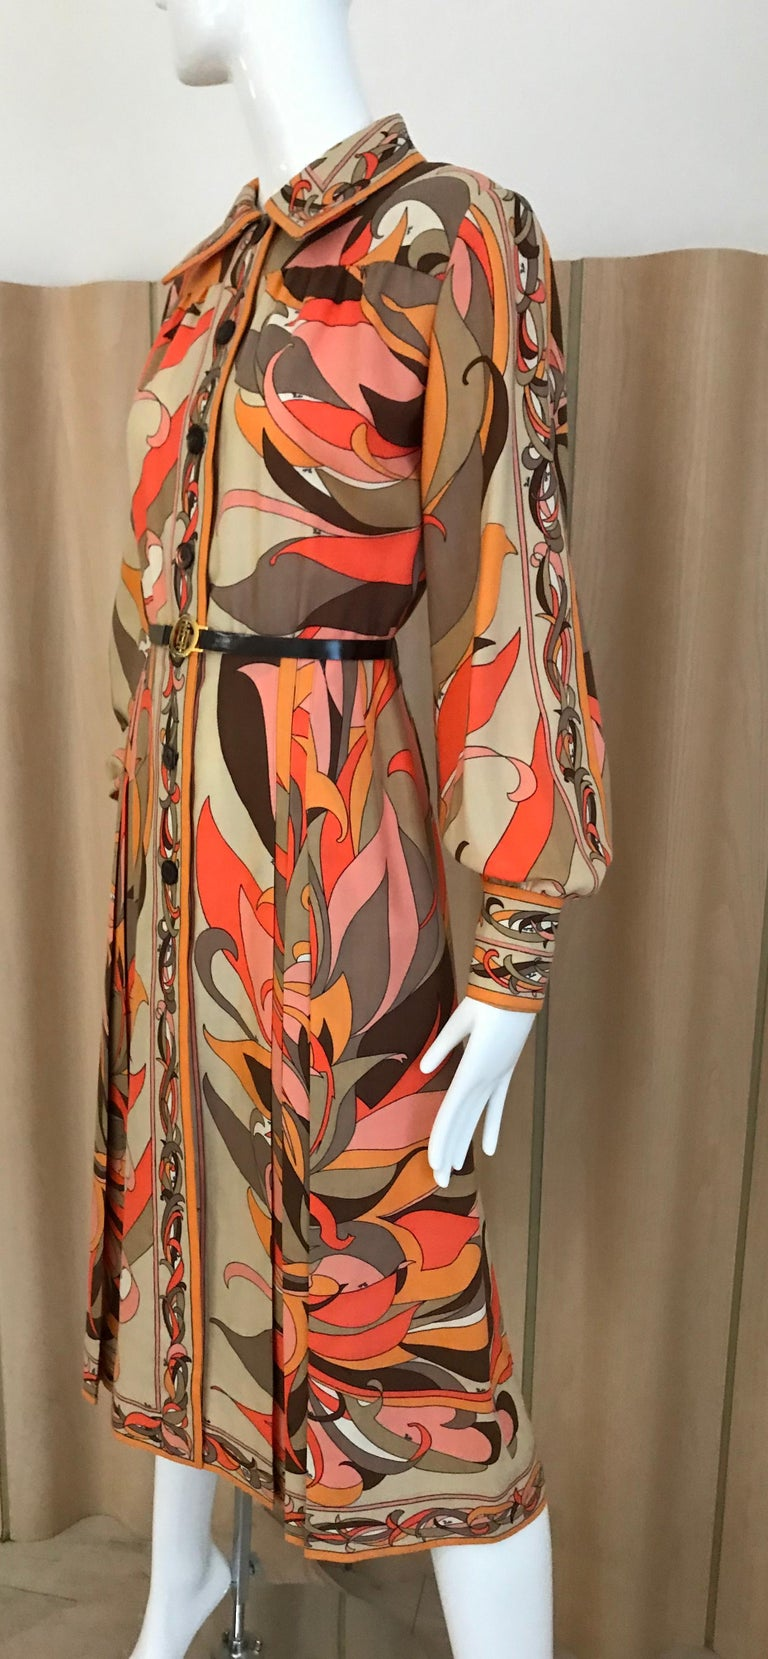 1970s Pucci Orange, Pink and Brown Print Wool Shirt Dress For Sale 3